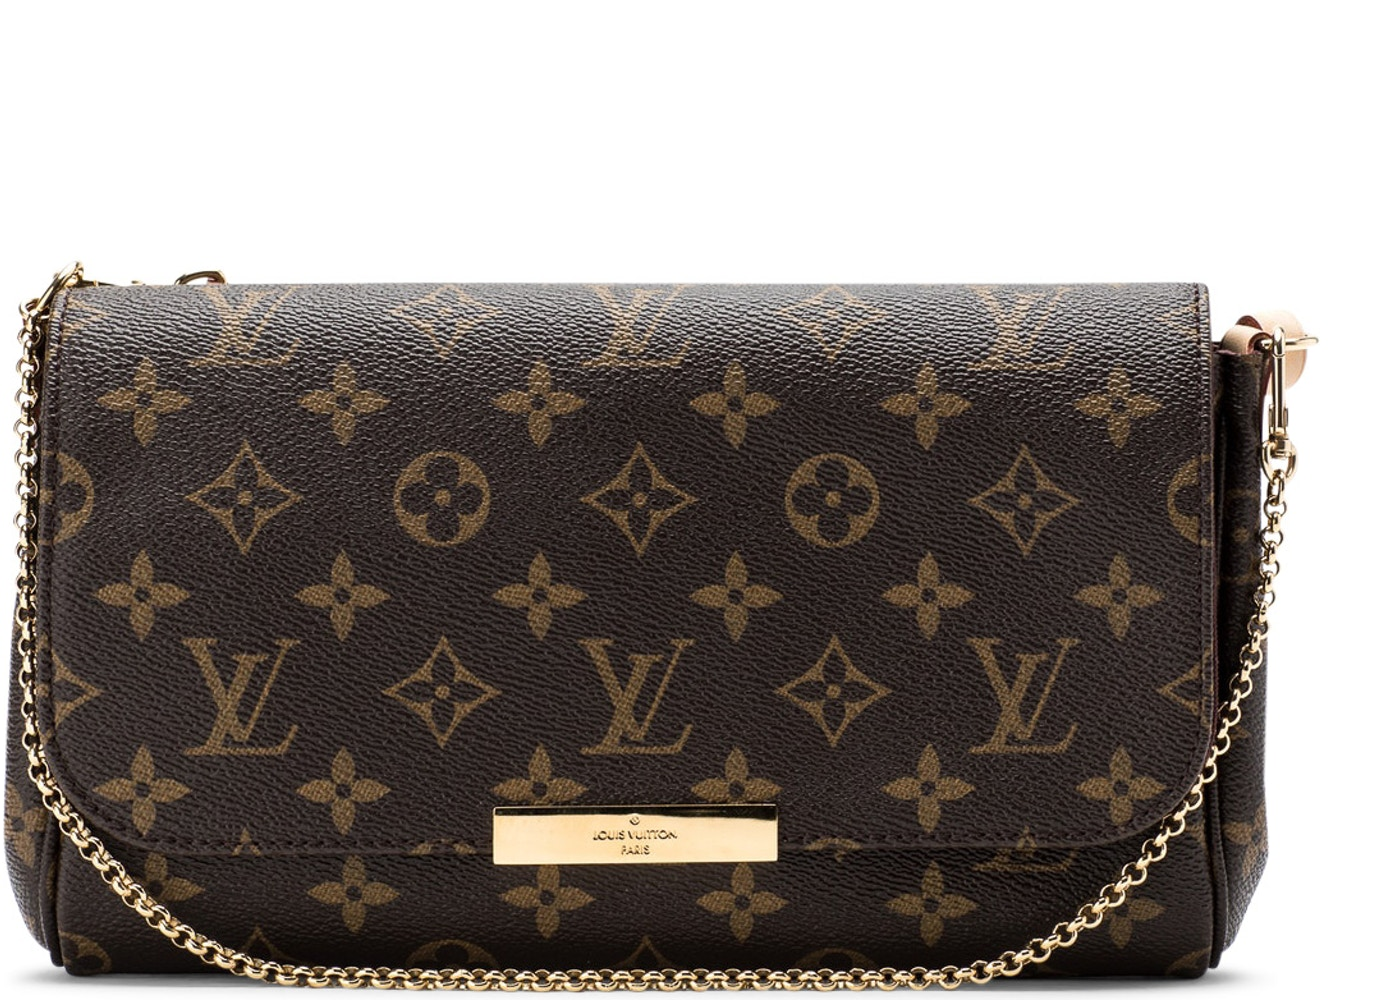 27a98e8a7d6 Louis Vuitton Favorite Monogram MM Brown. Monogram MM Brown